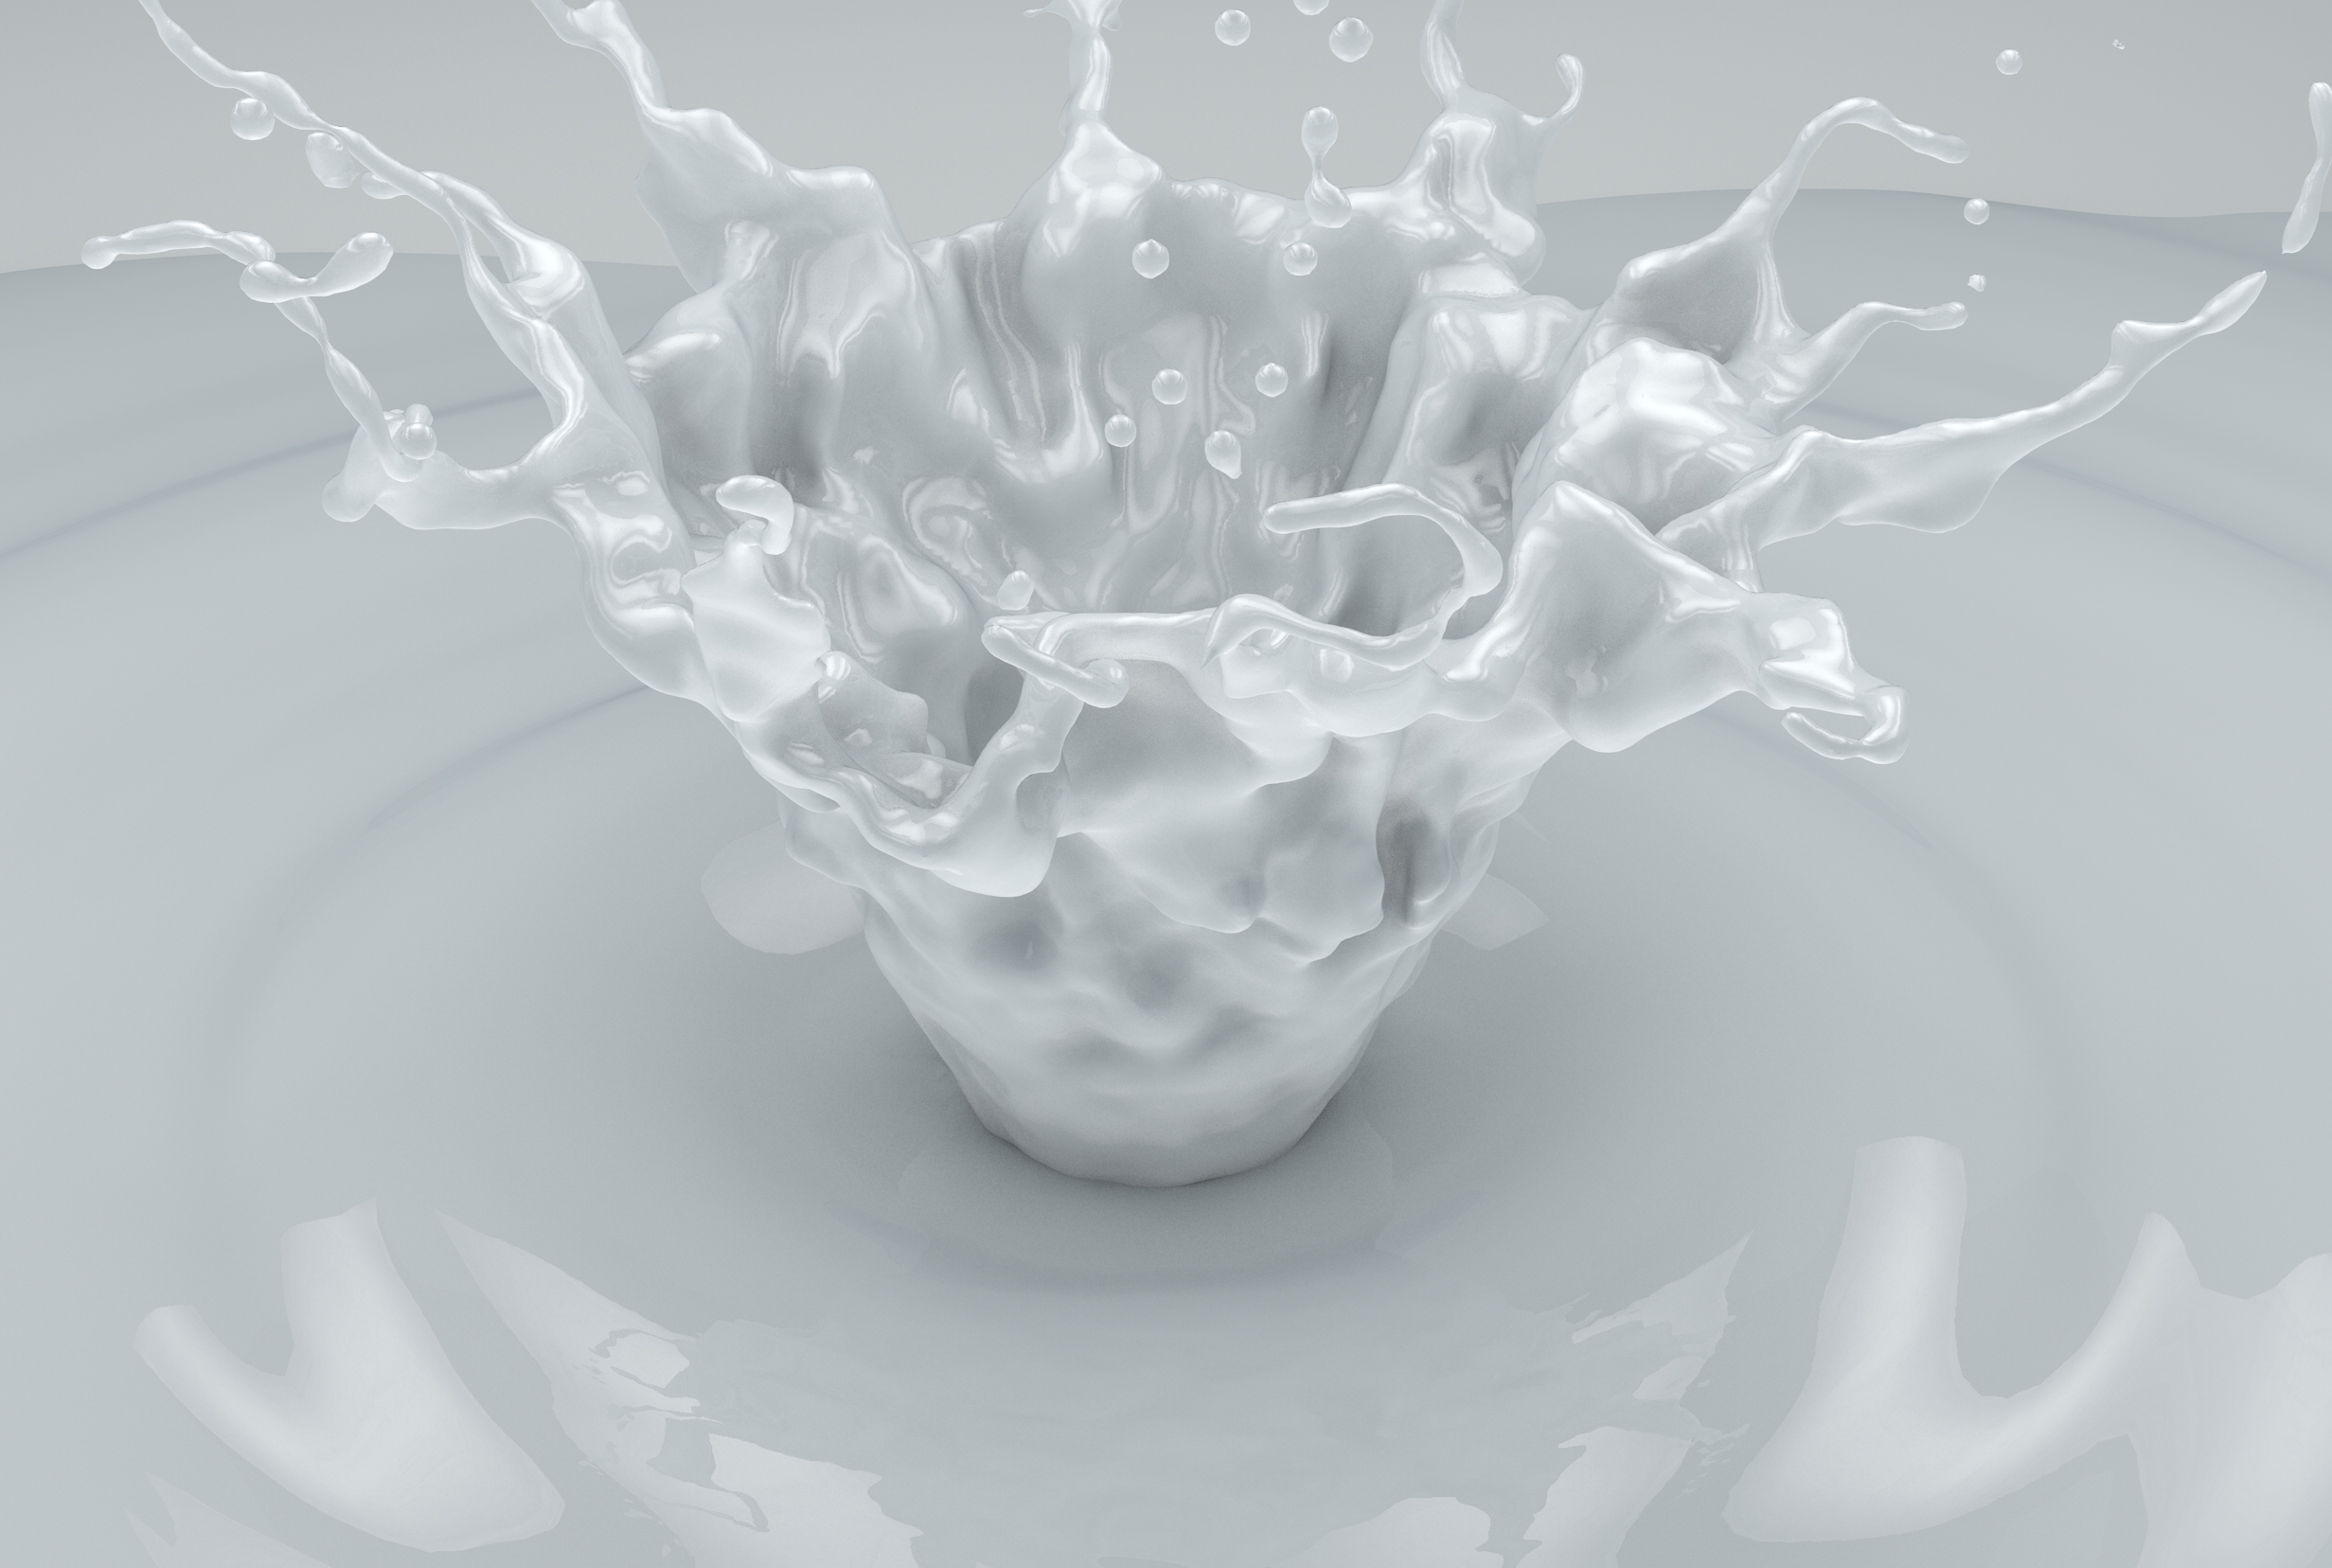 Milk_01